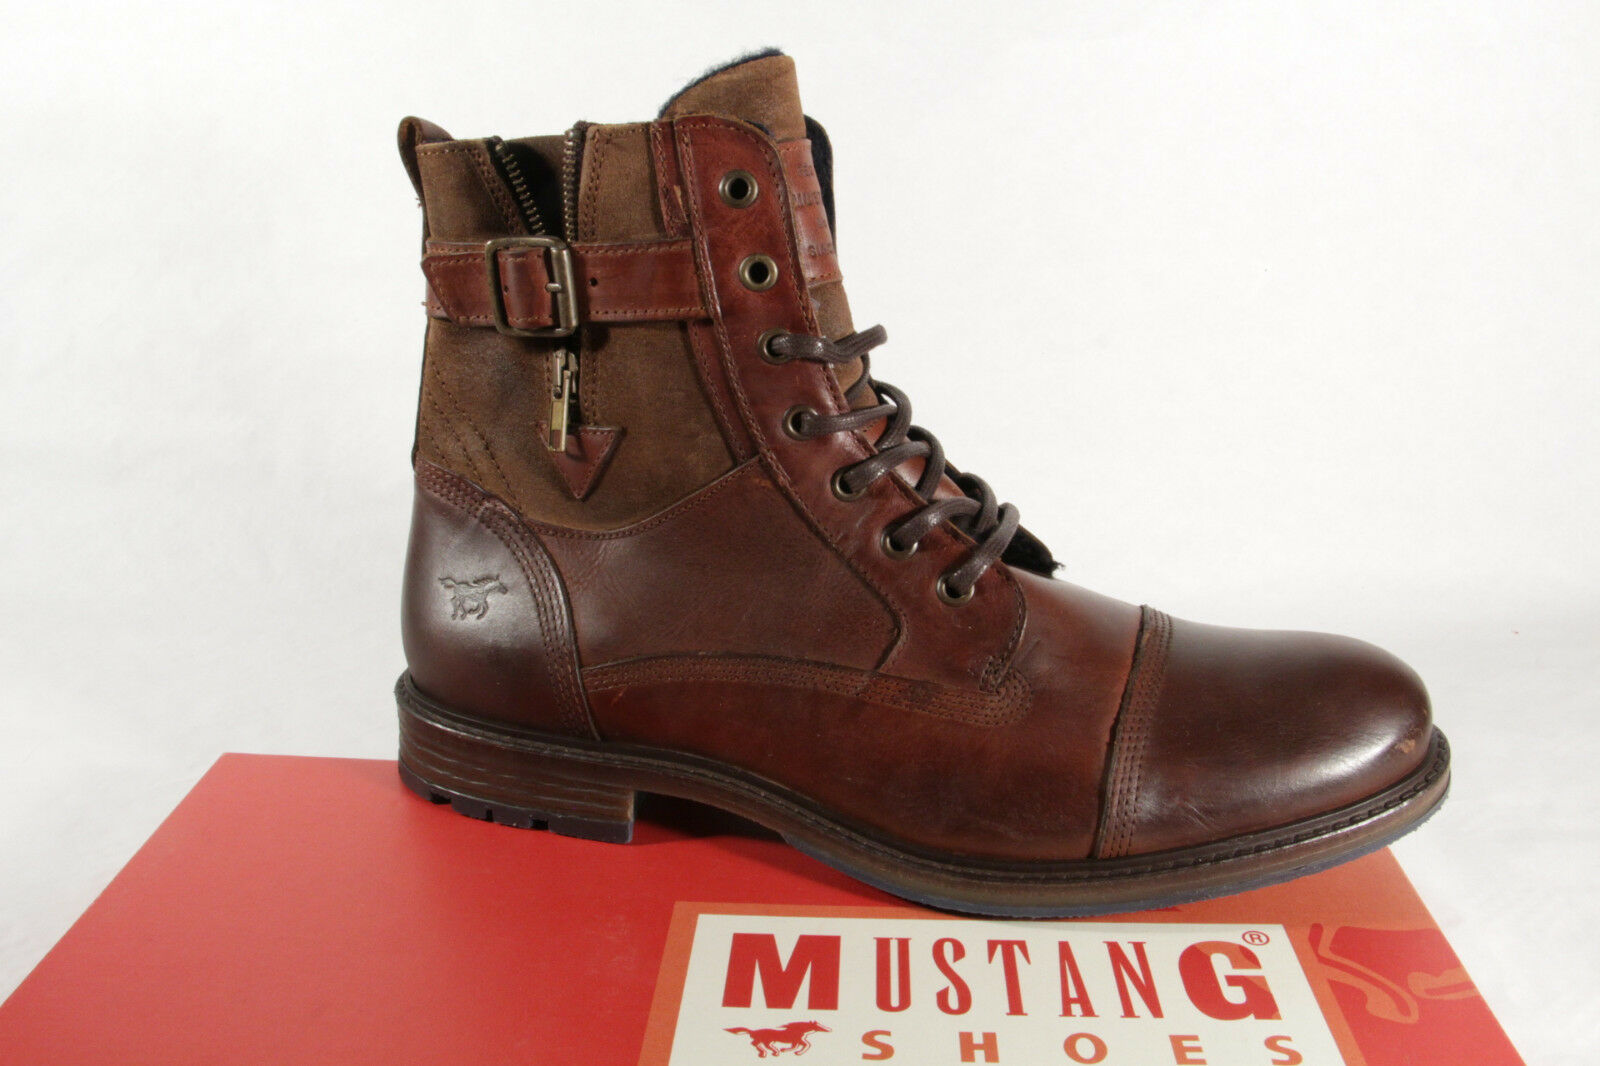 Mustang 4890 Men's Boots Ankle Boots Real Leather Brown New